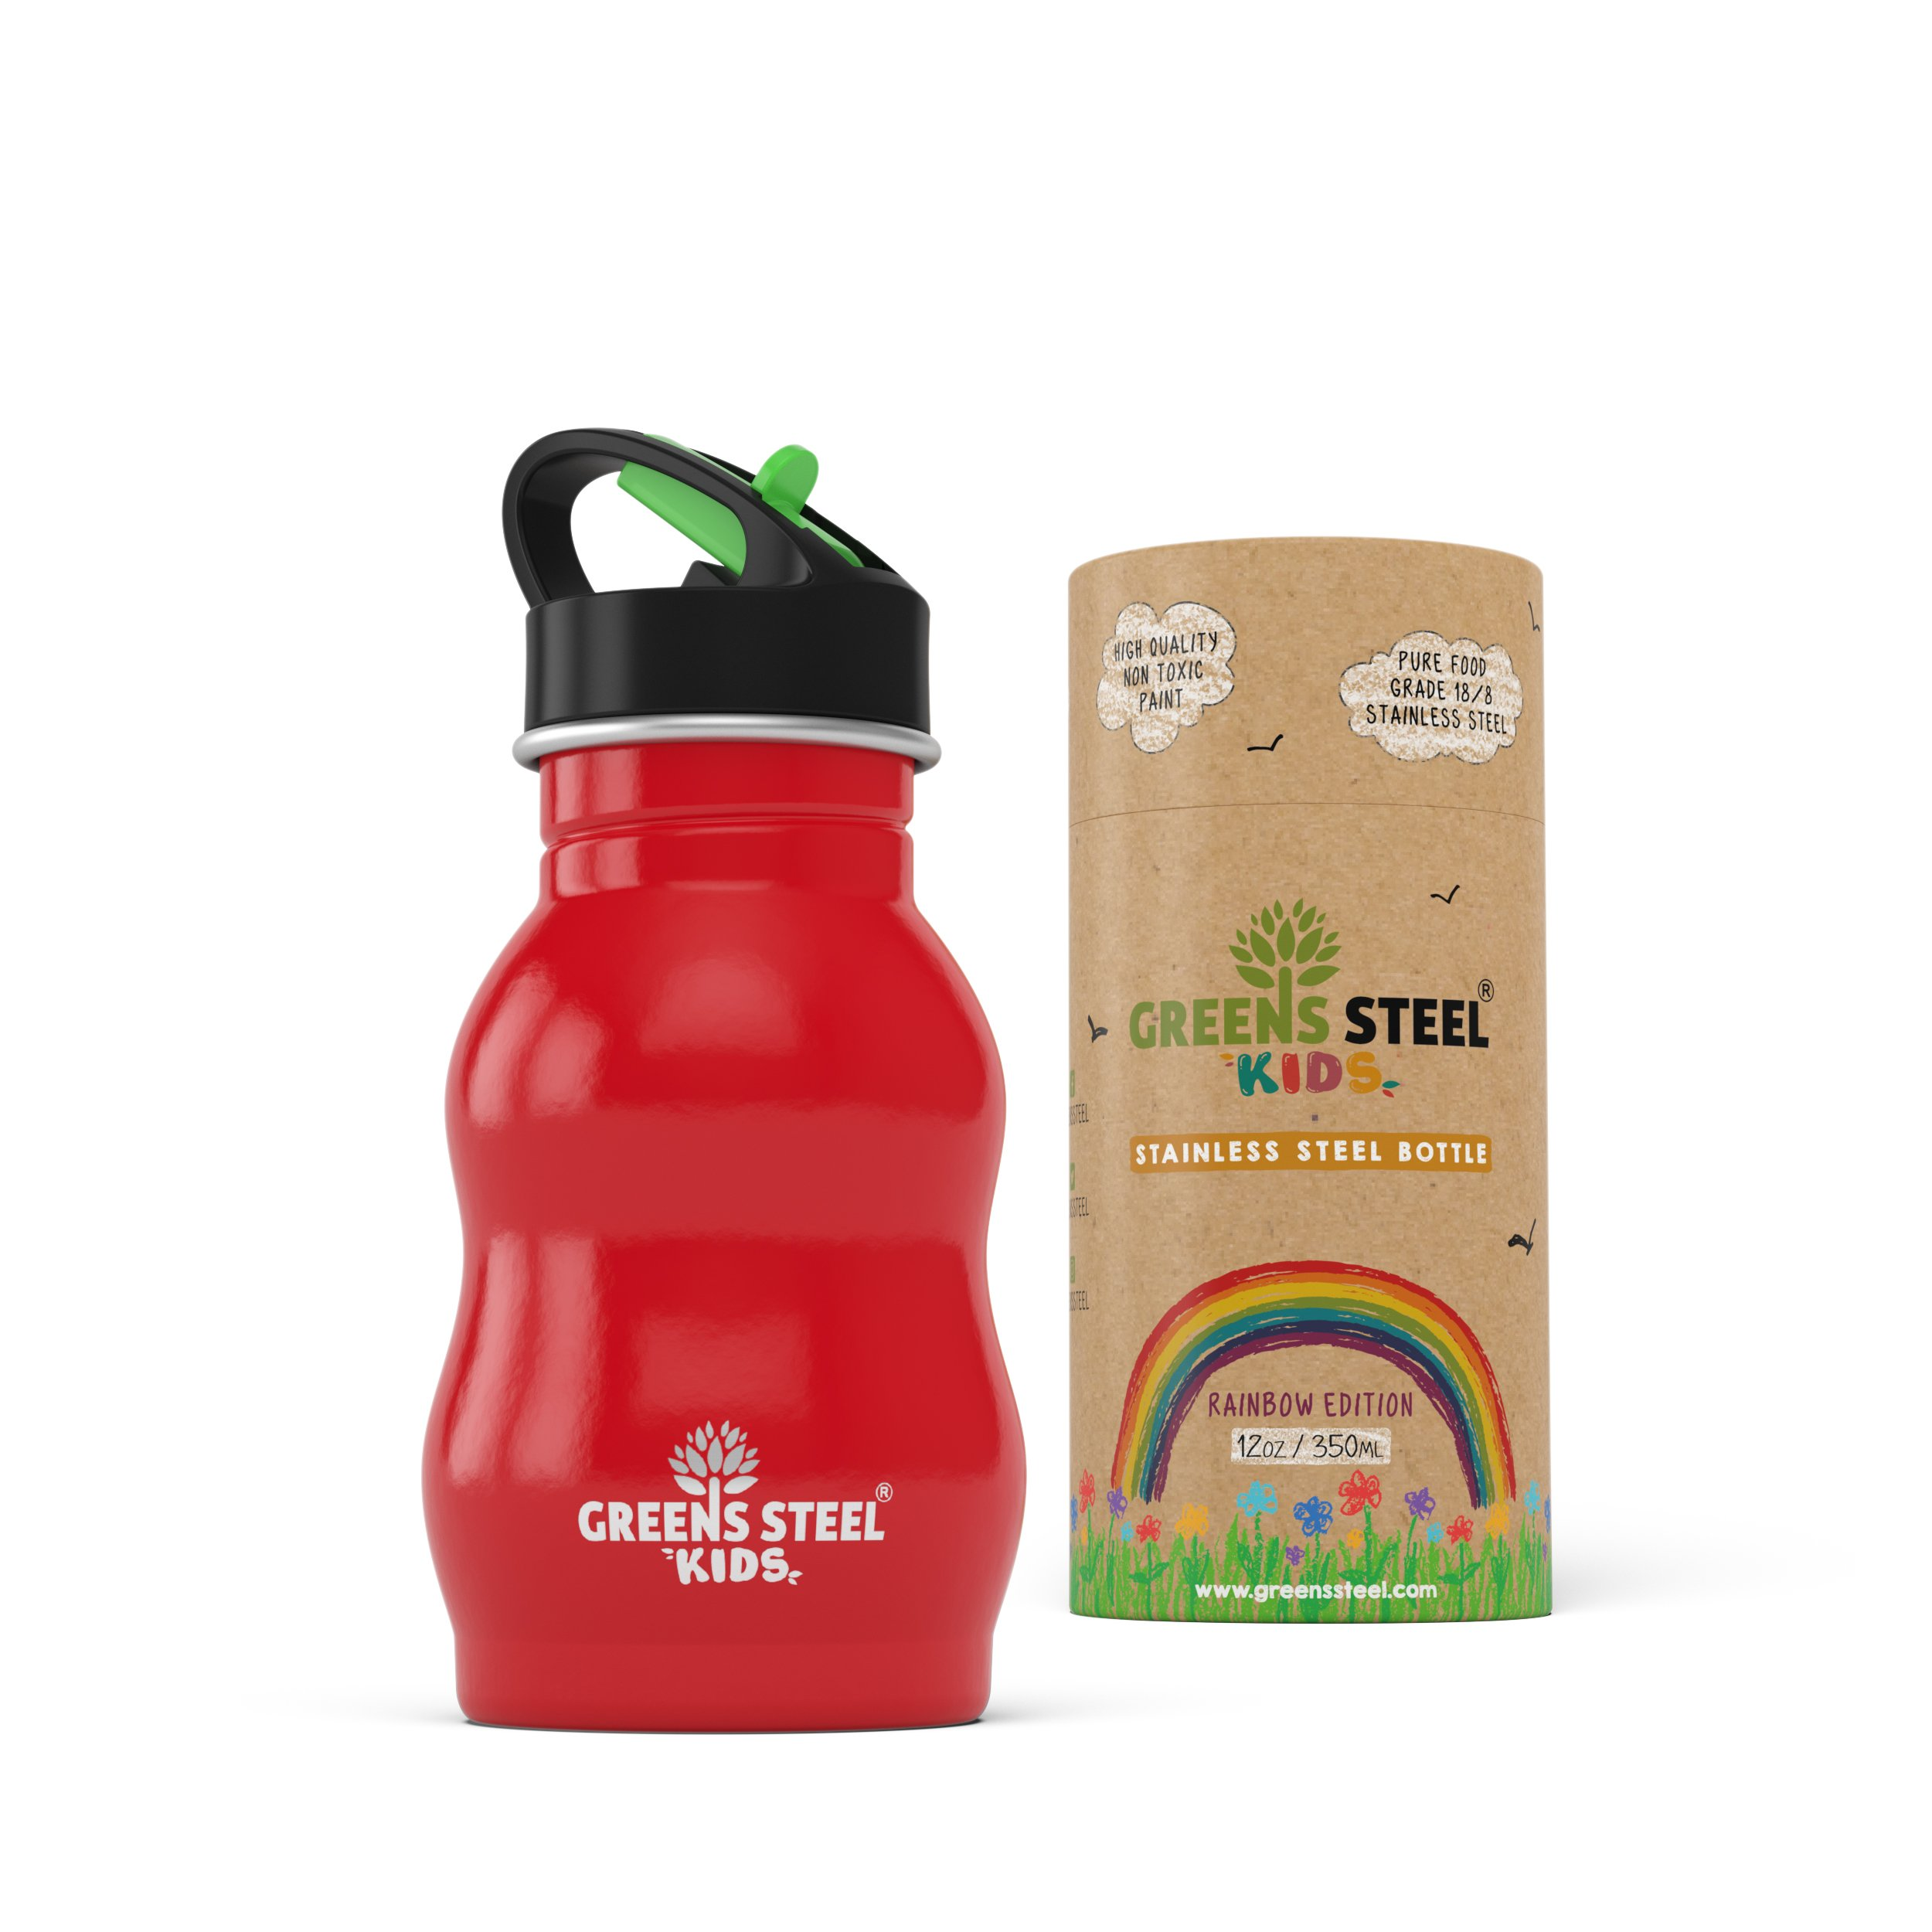 Kids Stainless Steel Water Bottle 12 oz - Sippy Cup Leak Proof Sports Cap with Straw - Metal Kids Bottle - Toddler Child Friendly Flask (Red)